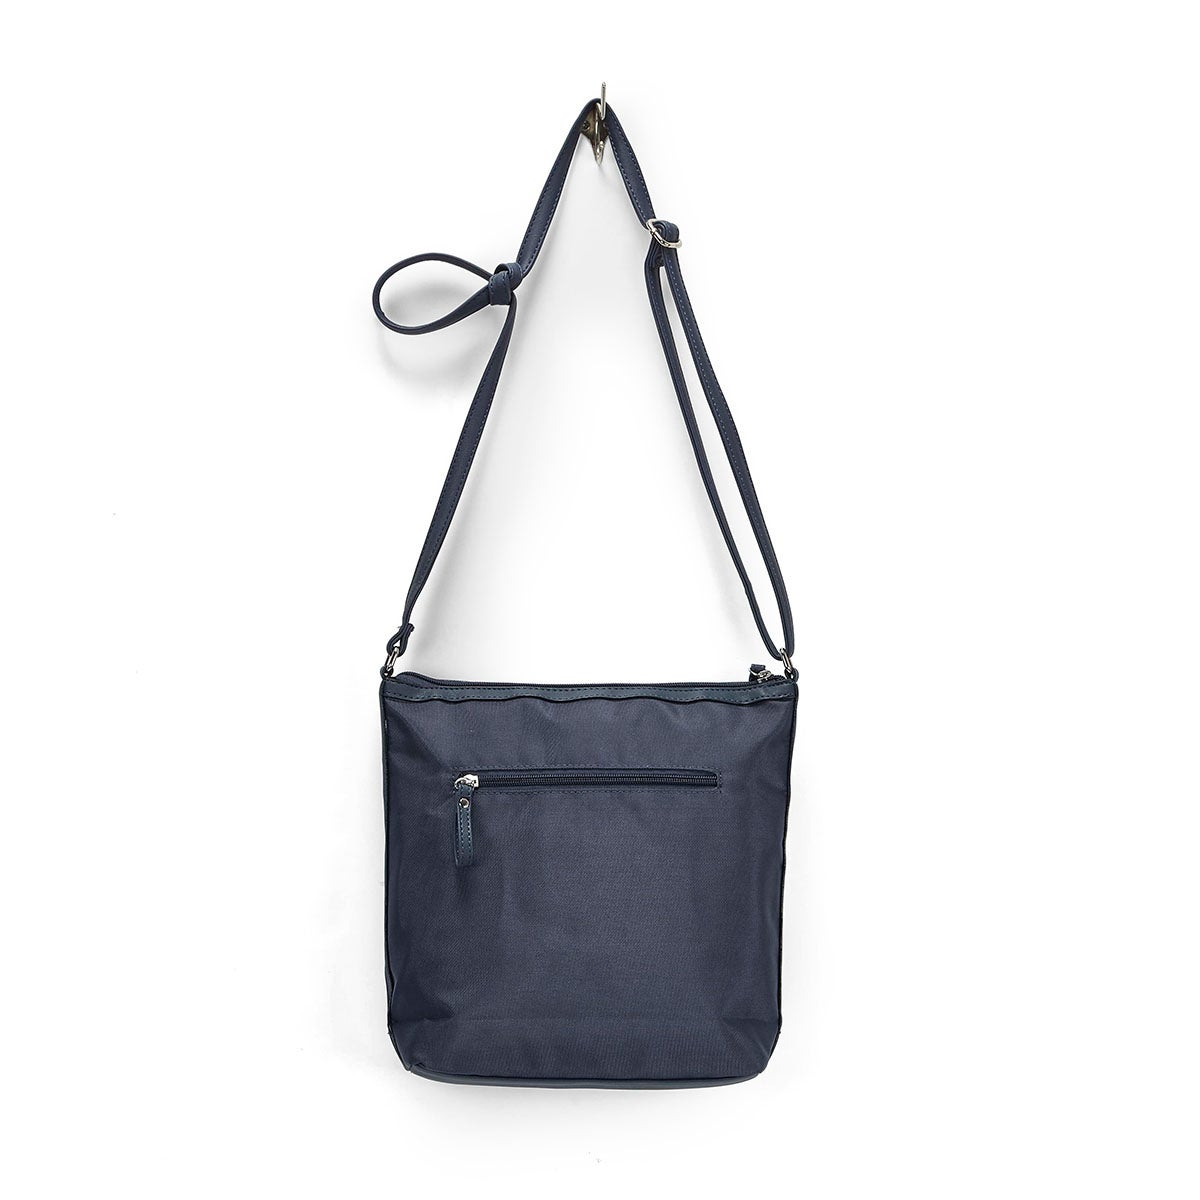 Lds Roots73 navy front pocket crossbody